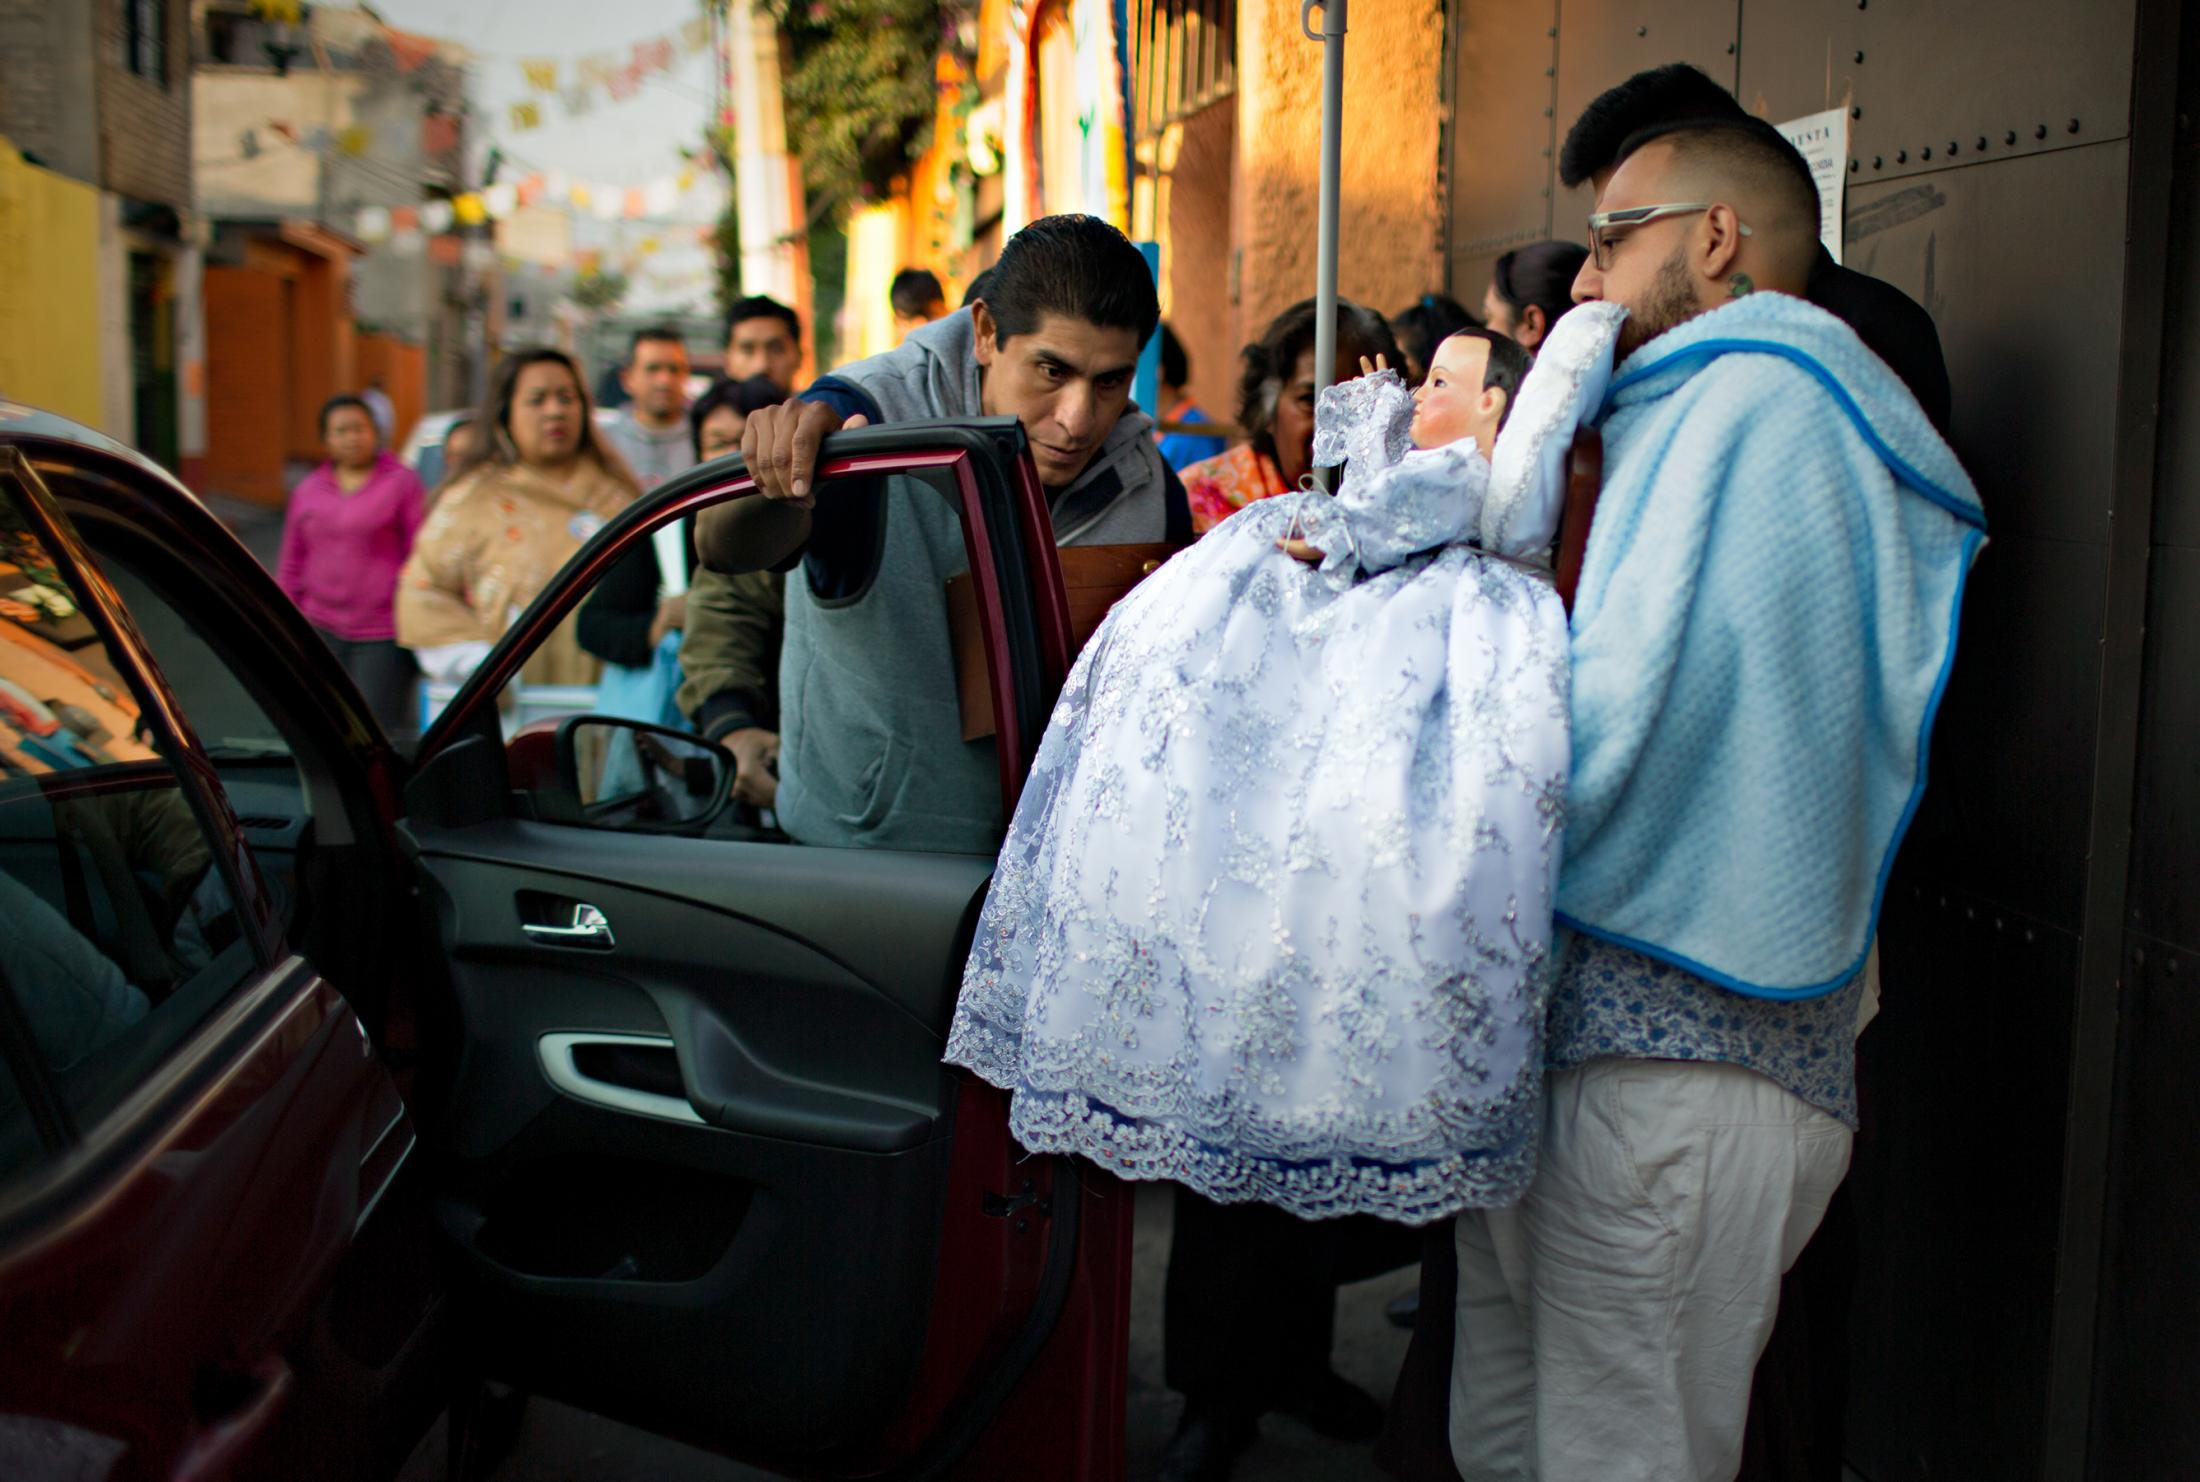 Neighbors take an active role in taking care of the Niñopa's needs. Here, friends and neighbors help the Niño getting into a vehicle to go visit a poor neighborhood about an hour away from Xochimilco.